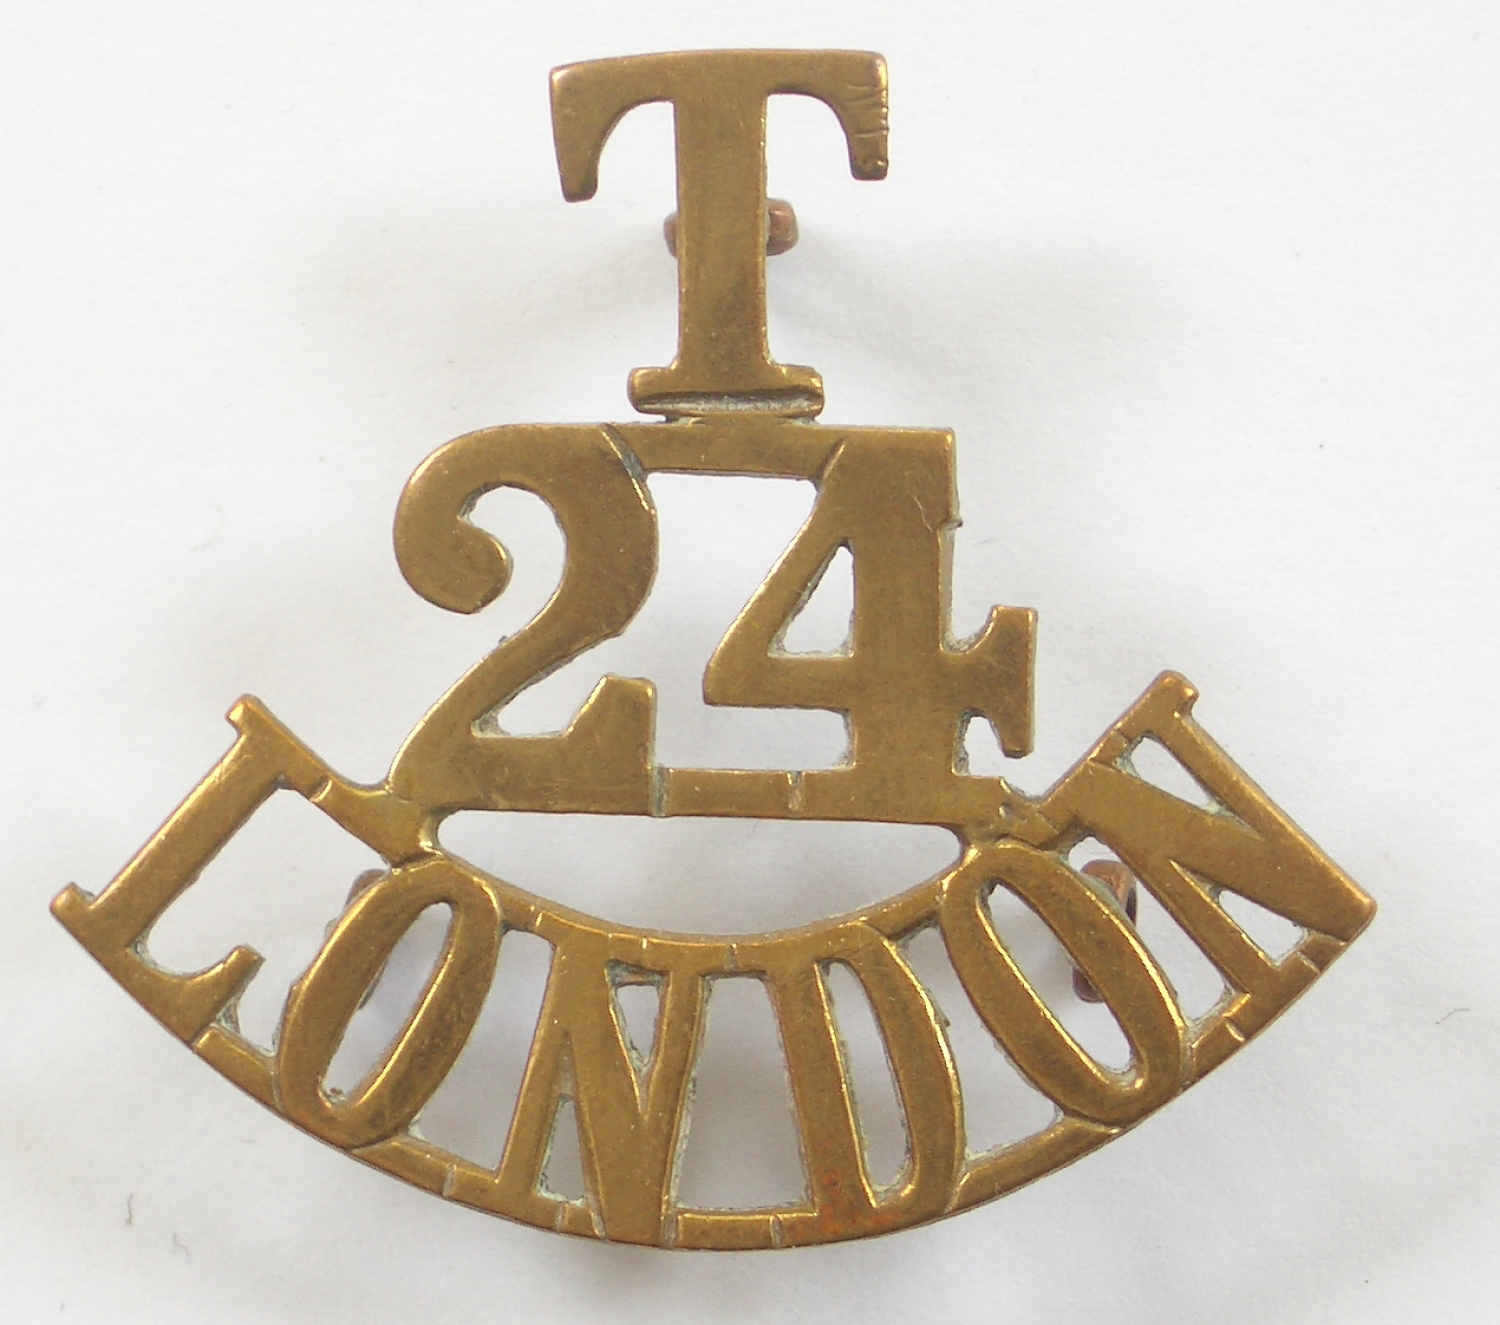 T/24/LONDON (Queen's) shoulder title